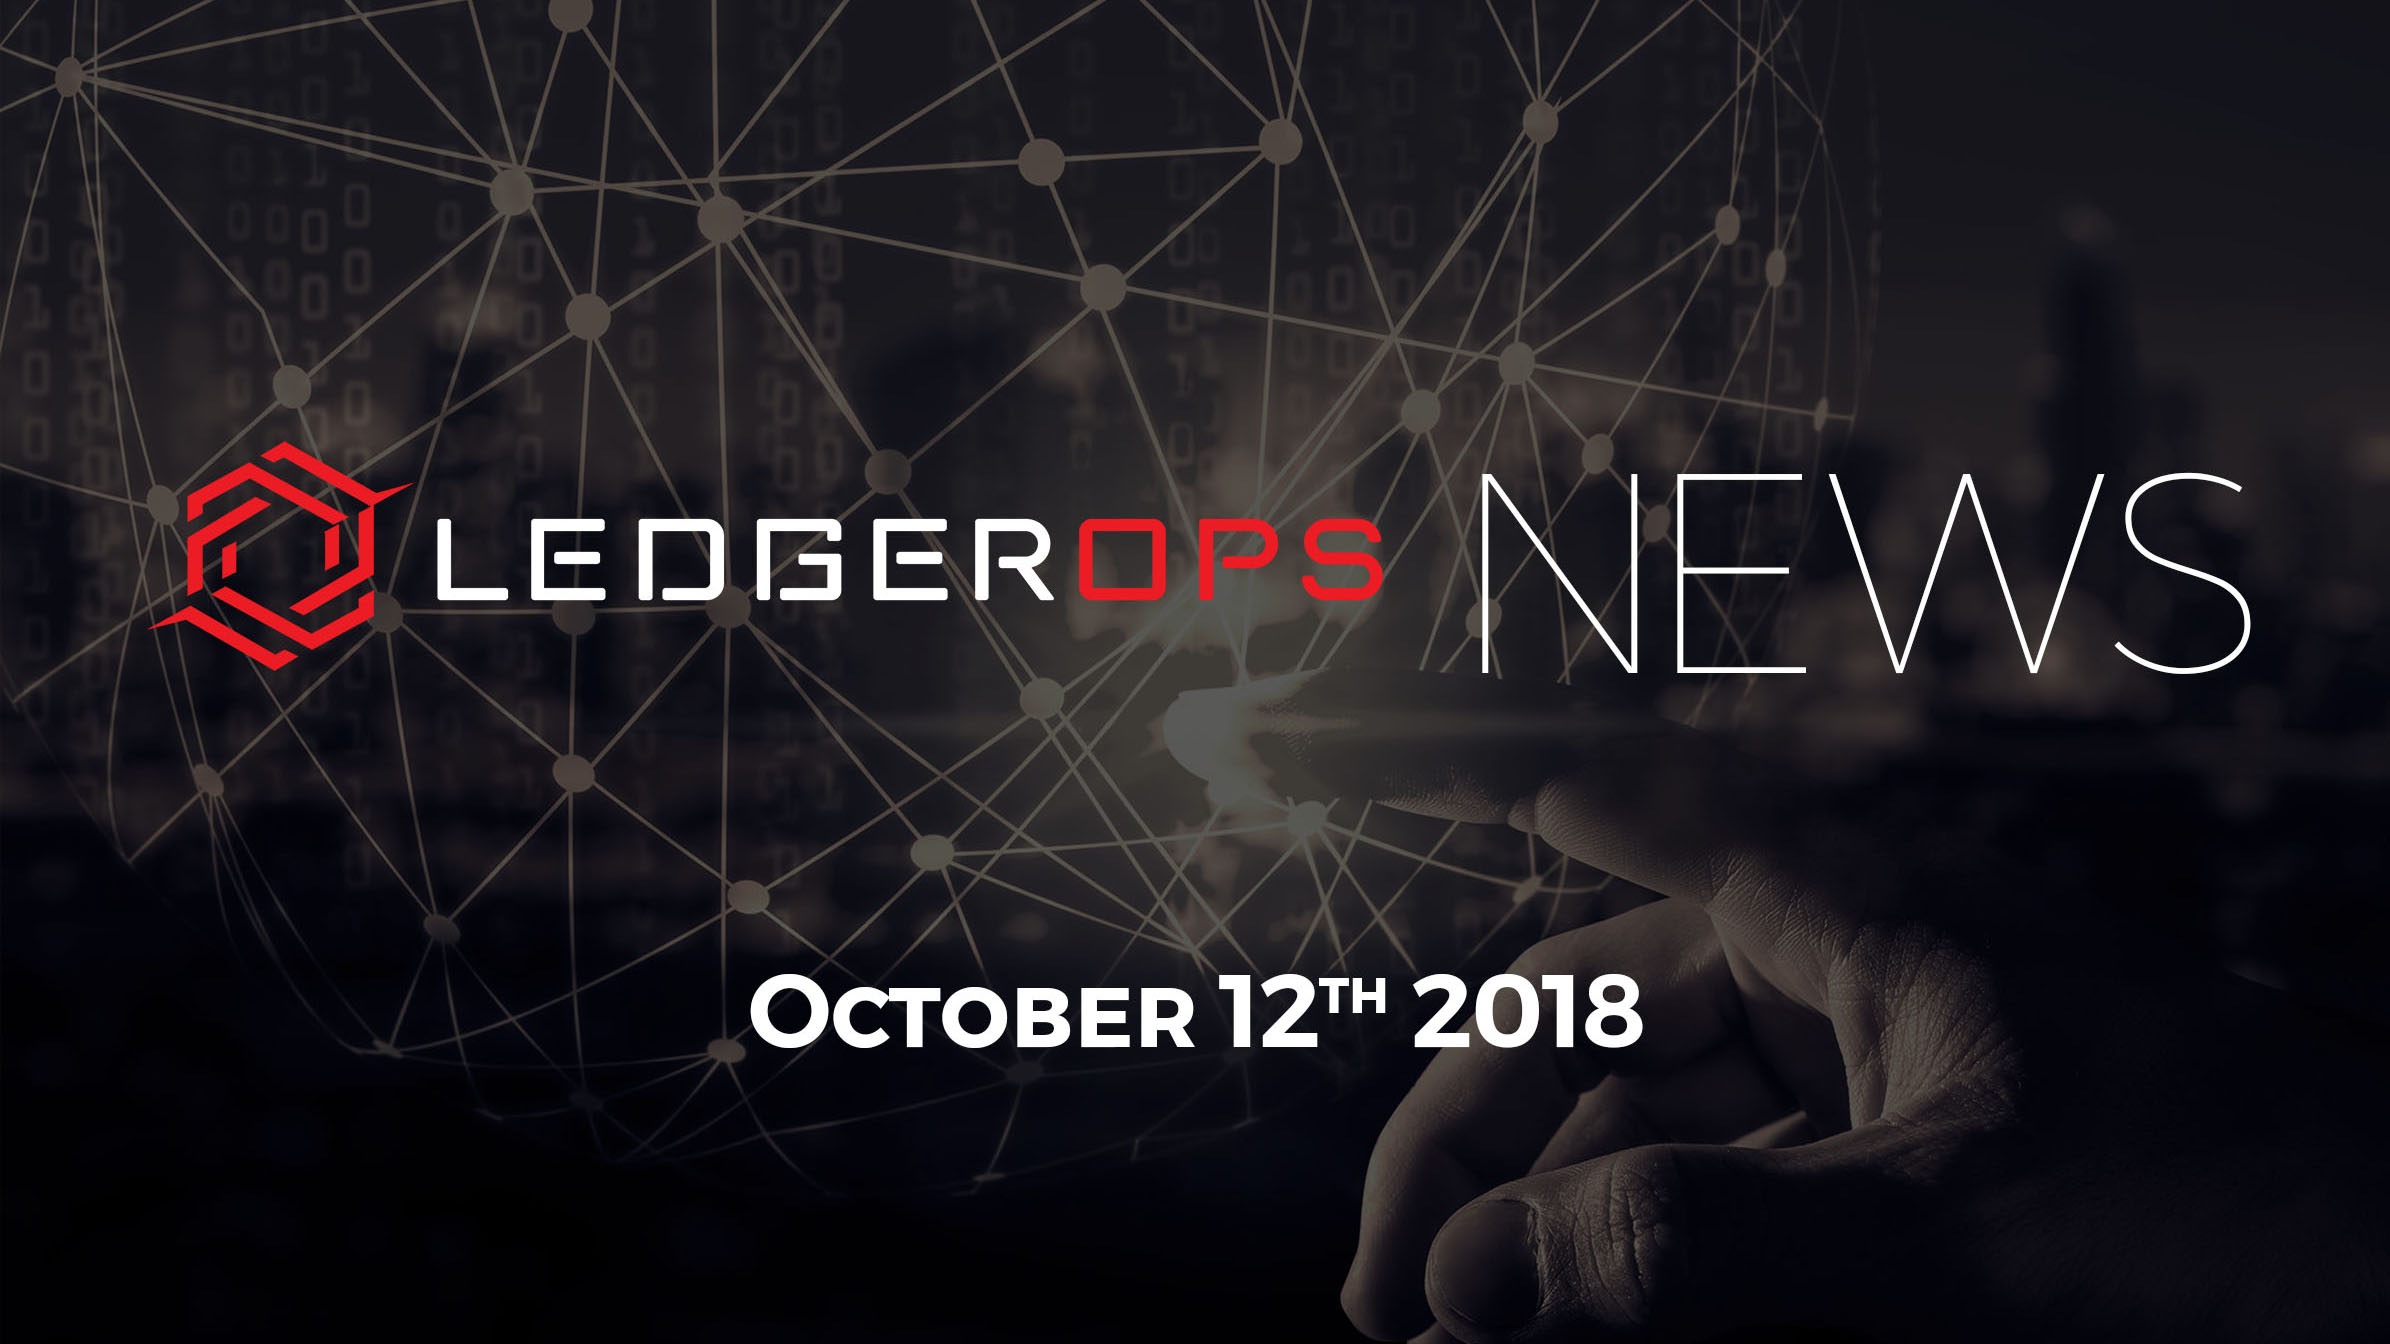 LedgerOps News banner 2018-10-05 wide.jpg